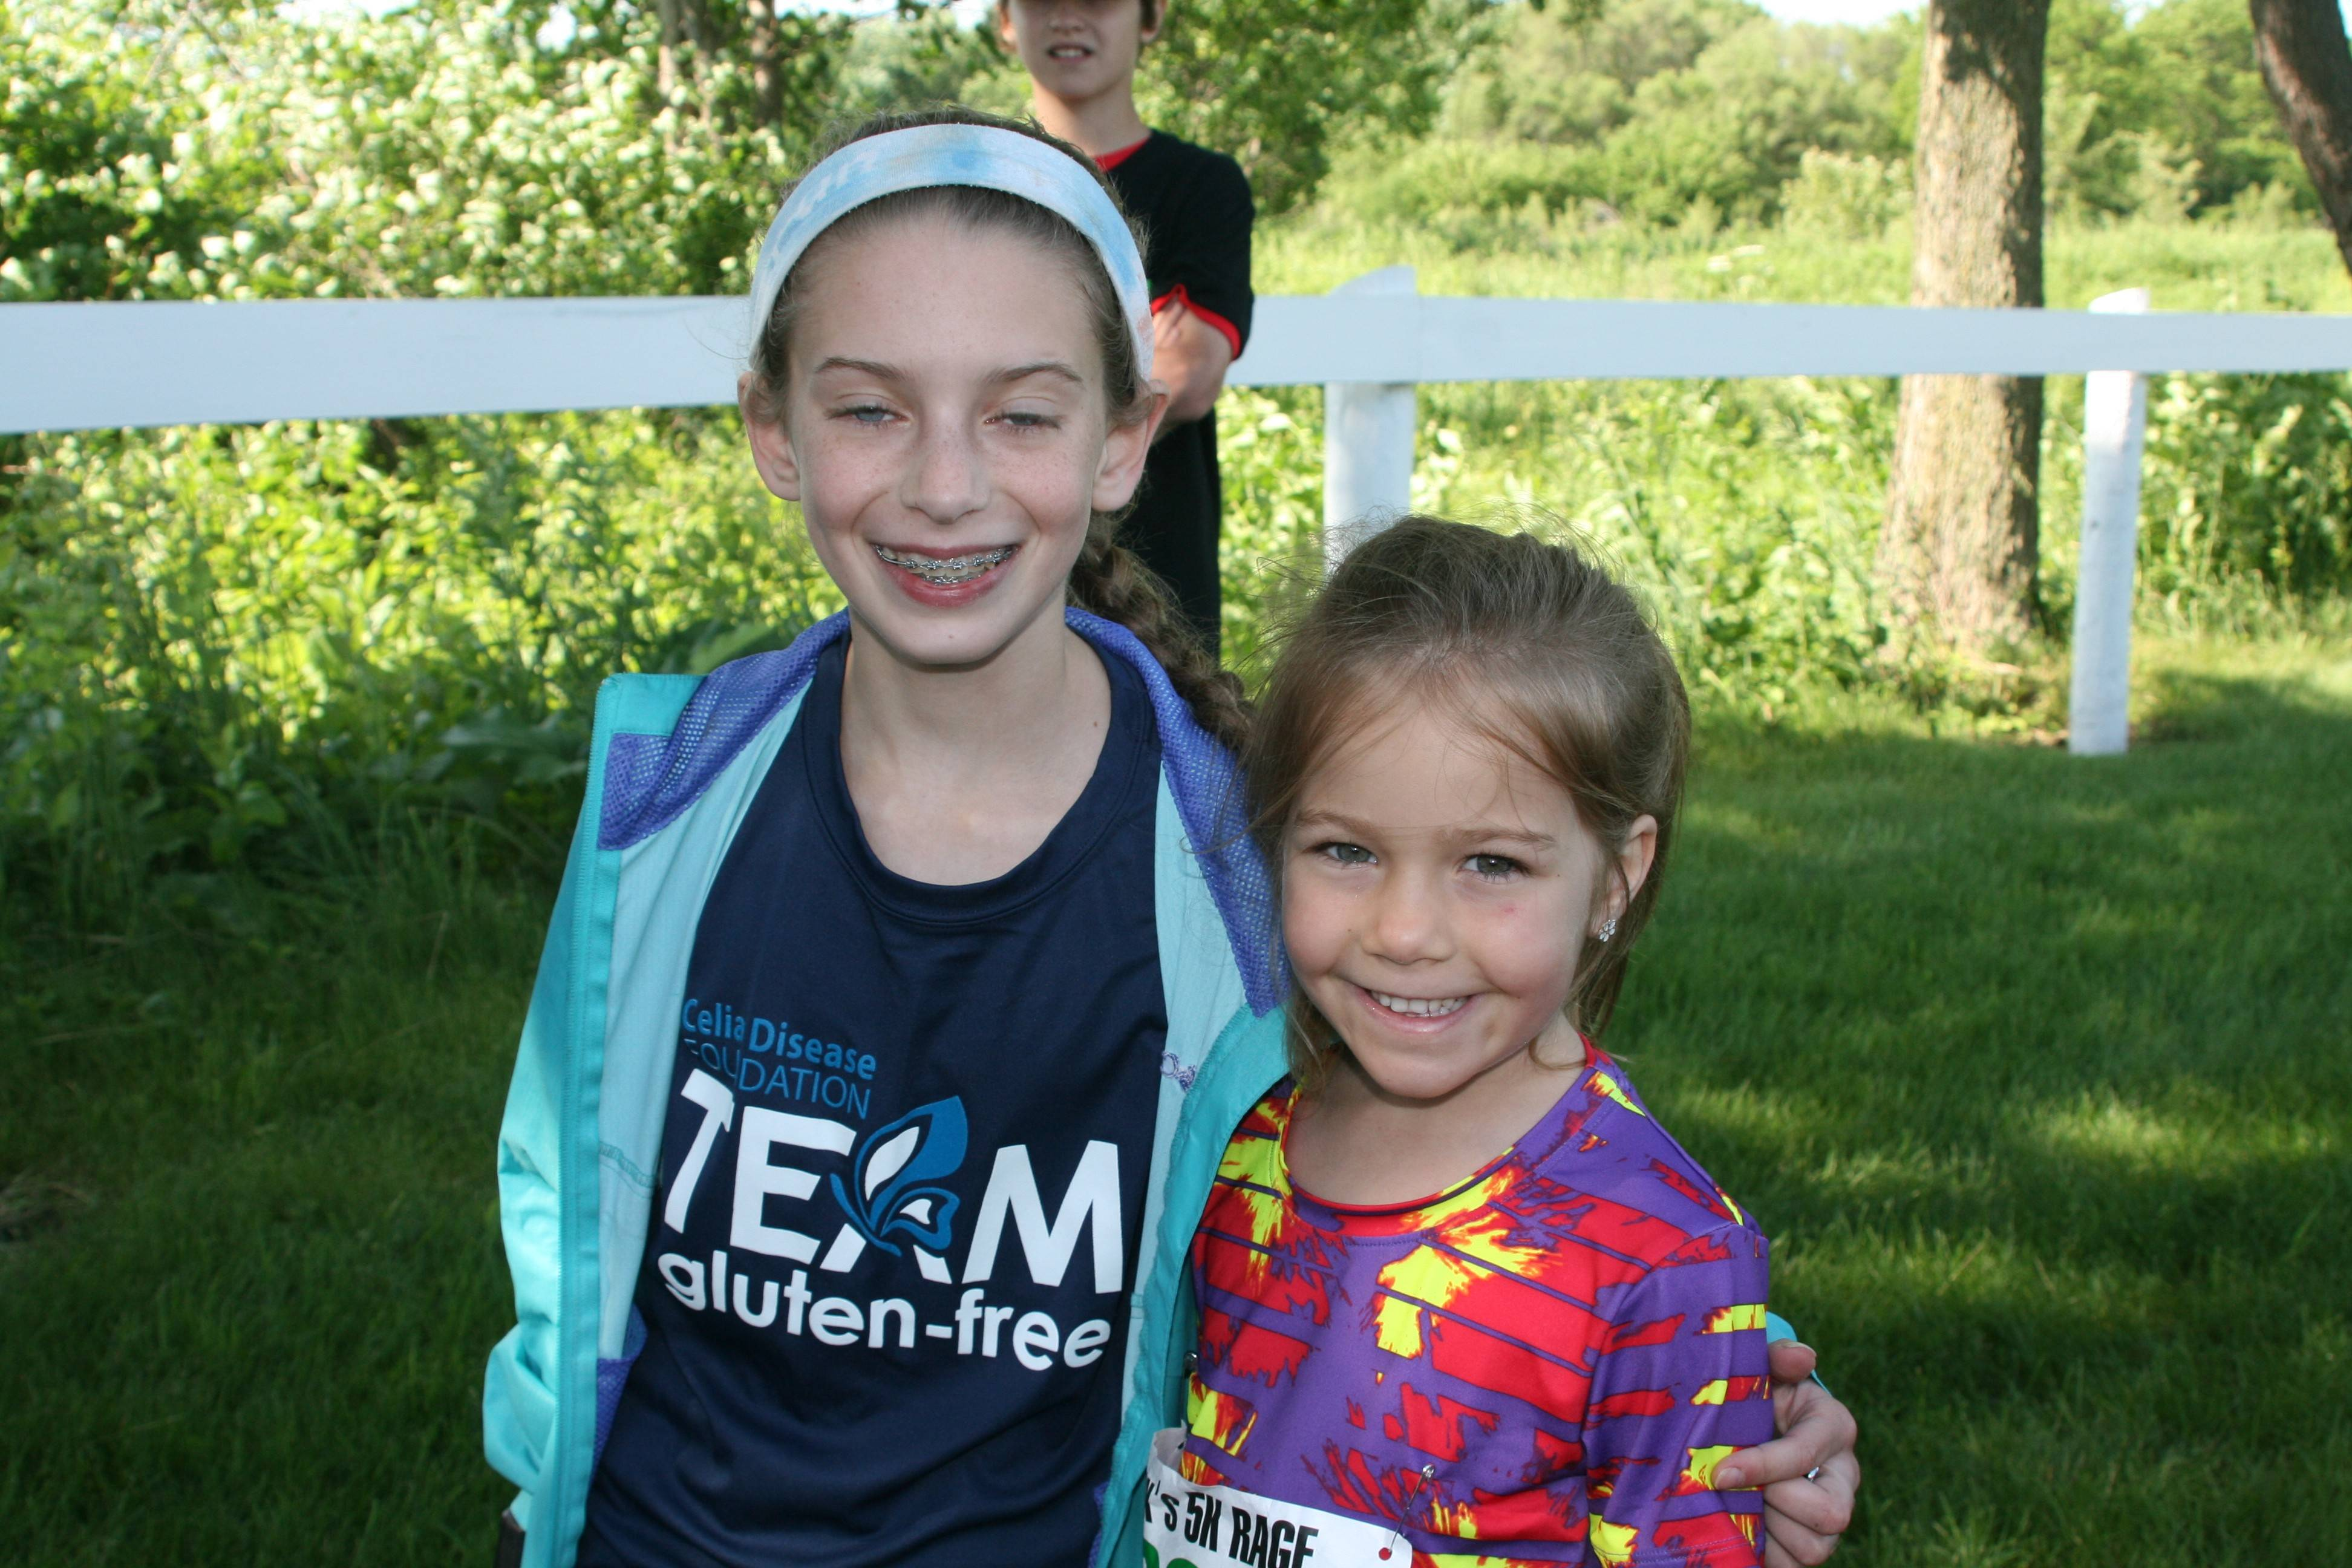 Alex Morris, left, congratulates Grace Lube, who won the girls 10 and younger age division in Alex's 5K RAGE, a race that raised nearly $9,000 for the Celiac Foundation. Alex, who planned the race, and Grace both have Celiac disease and must eat a gluten-free diet.